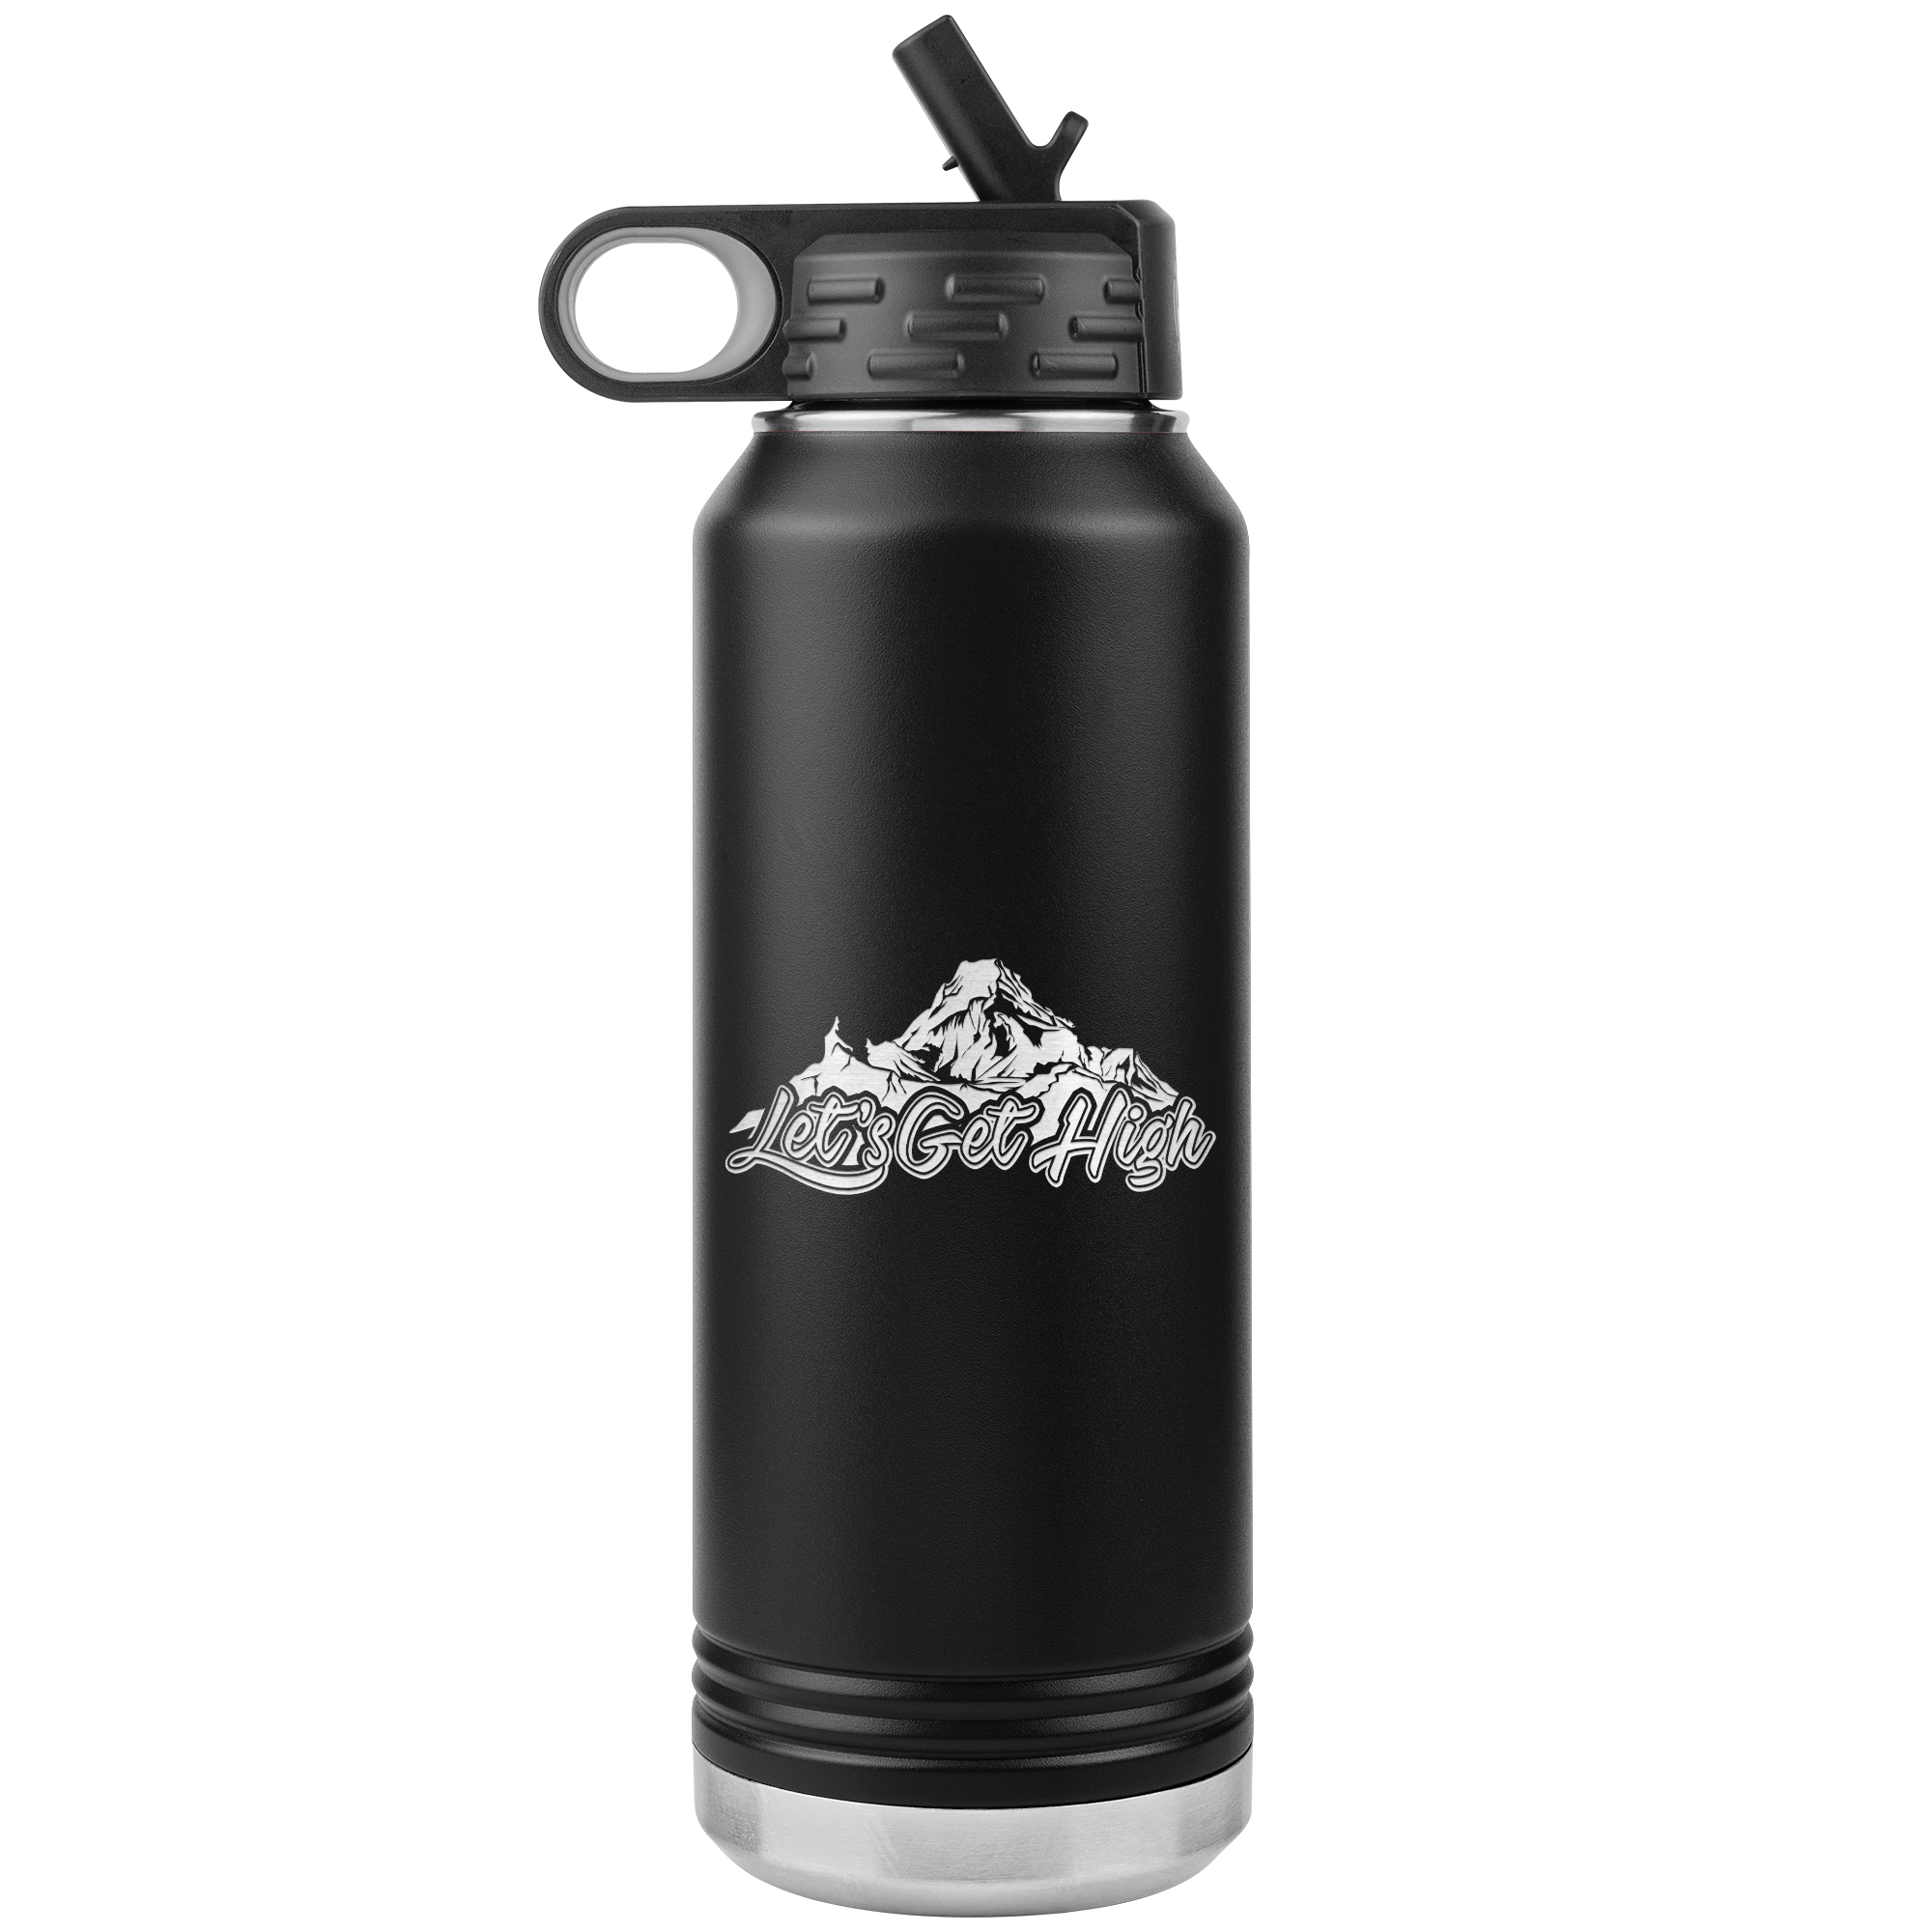 Let's Get High 32oz Water Bottle Tumbler